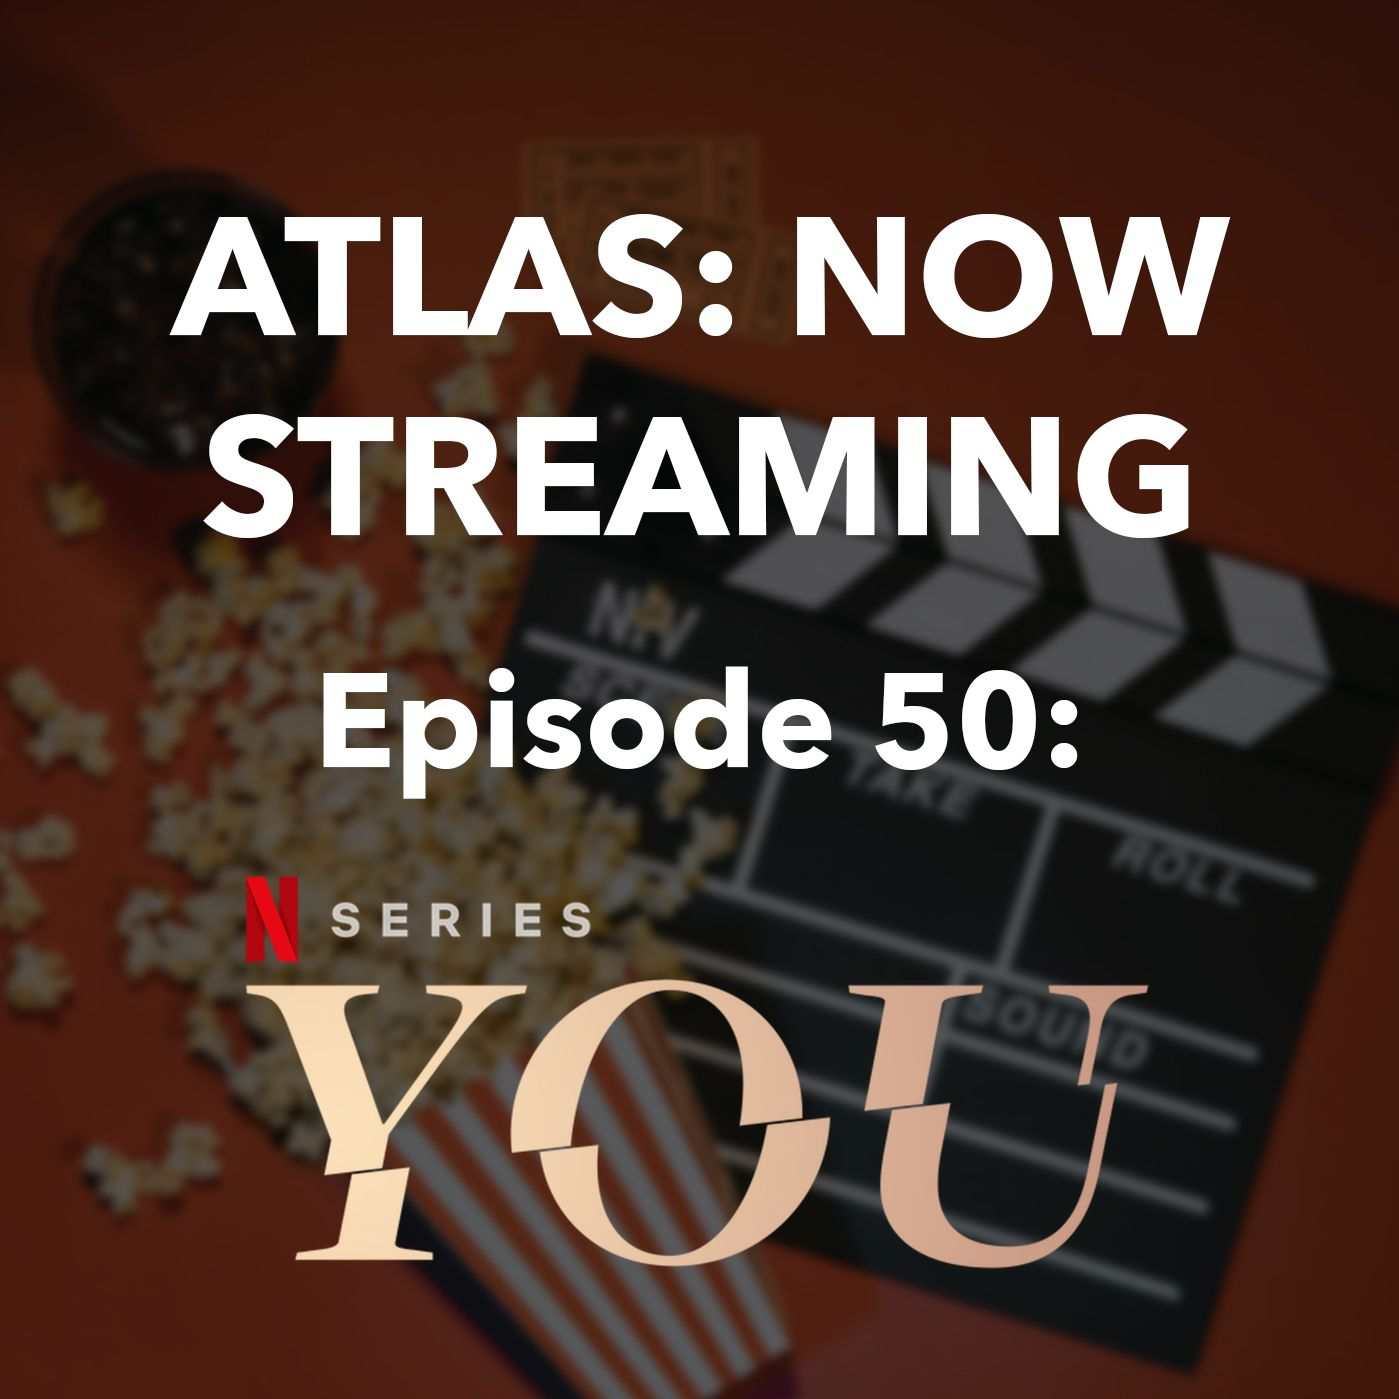 You, now on Netflix - Atlas Now Streaming 50